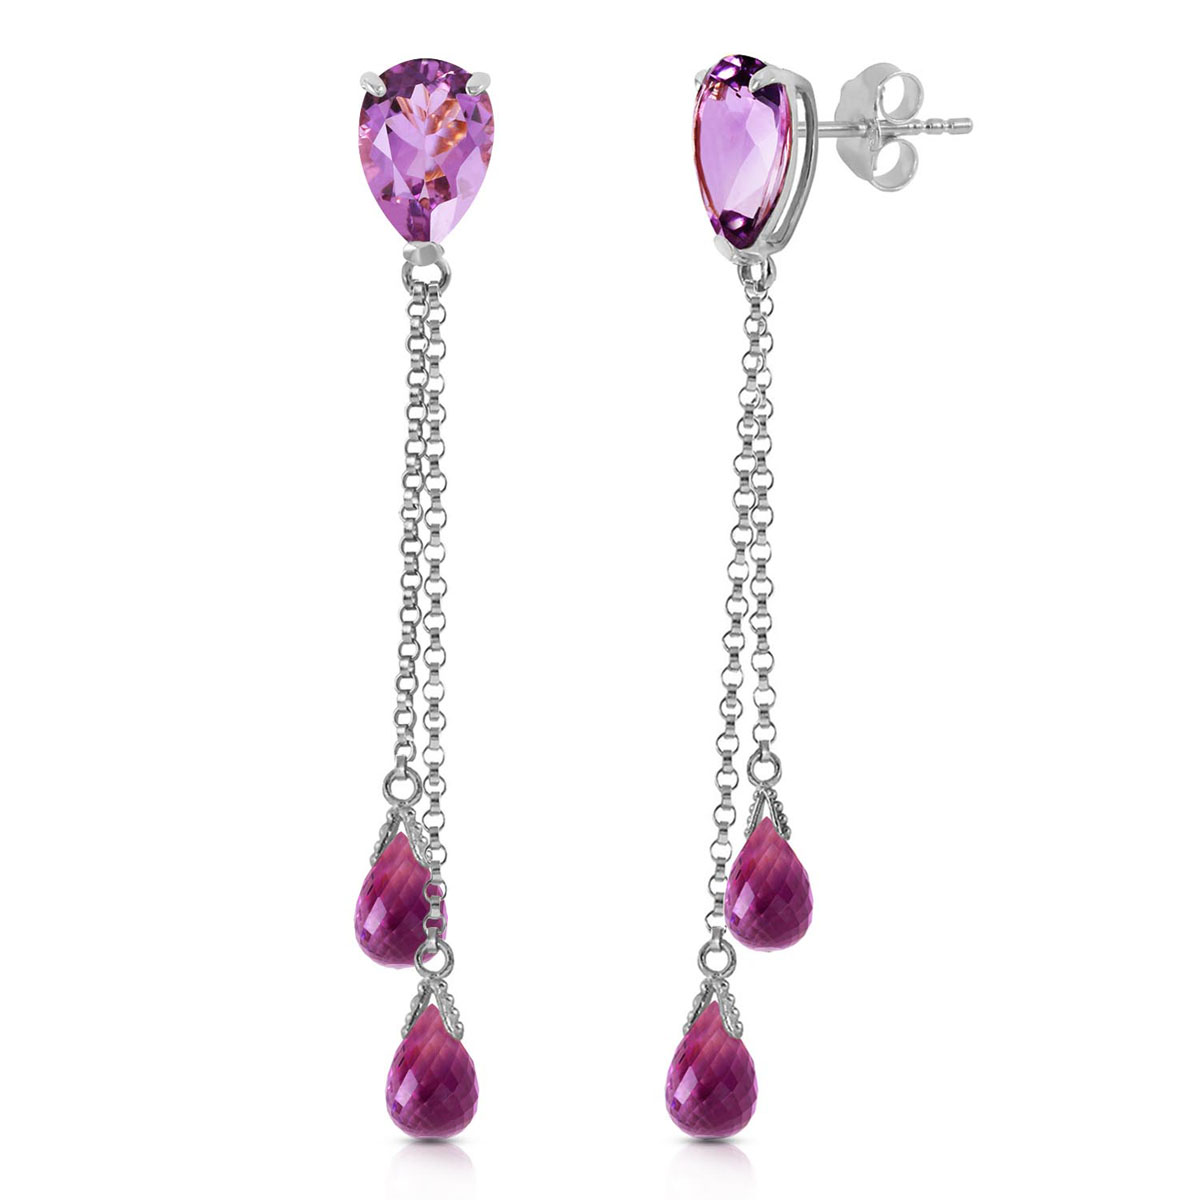 Amethyst Droplet Earrings 7.5 ctw in 9ct White Gold